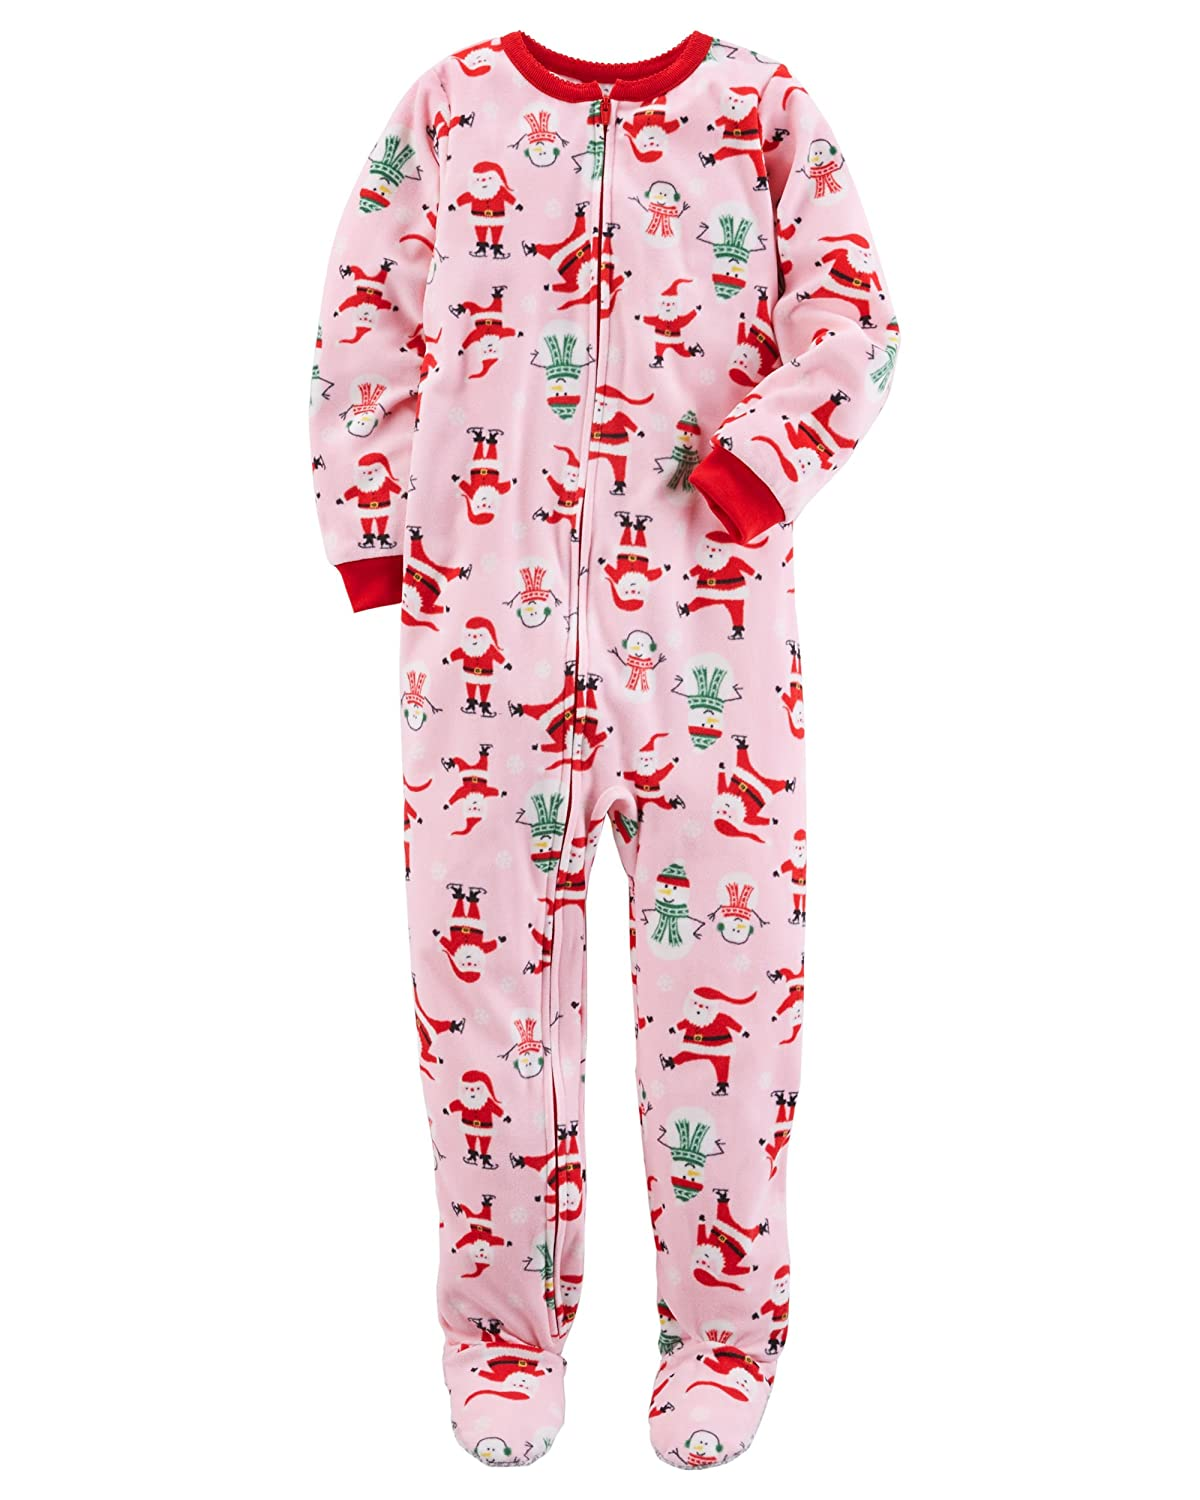 848859b66 Amazon.com  Carter s Baby Toddler Girl s 2 Pack Fleece Footed Pajama ...